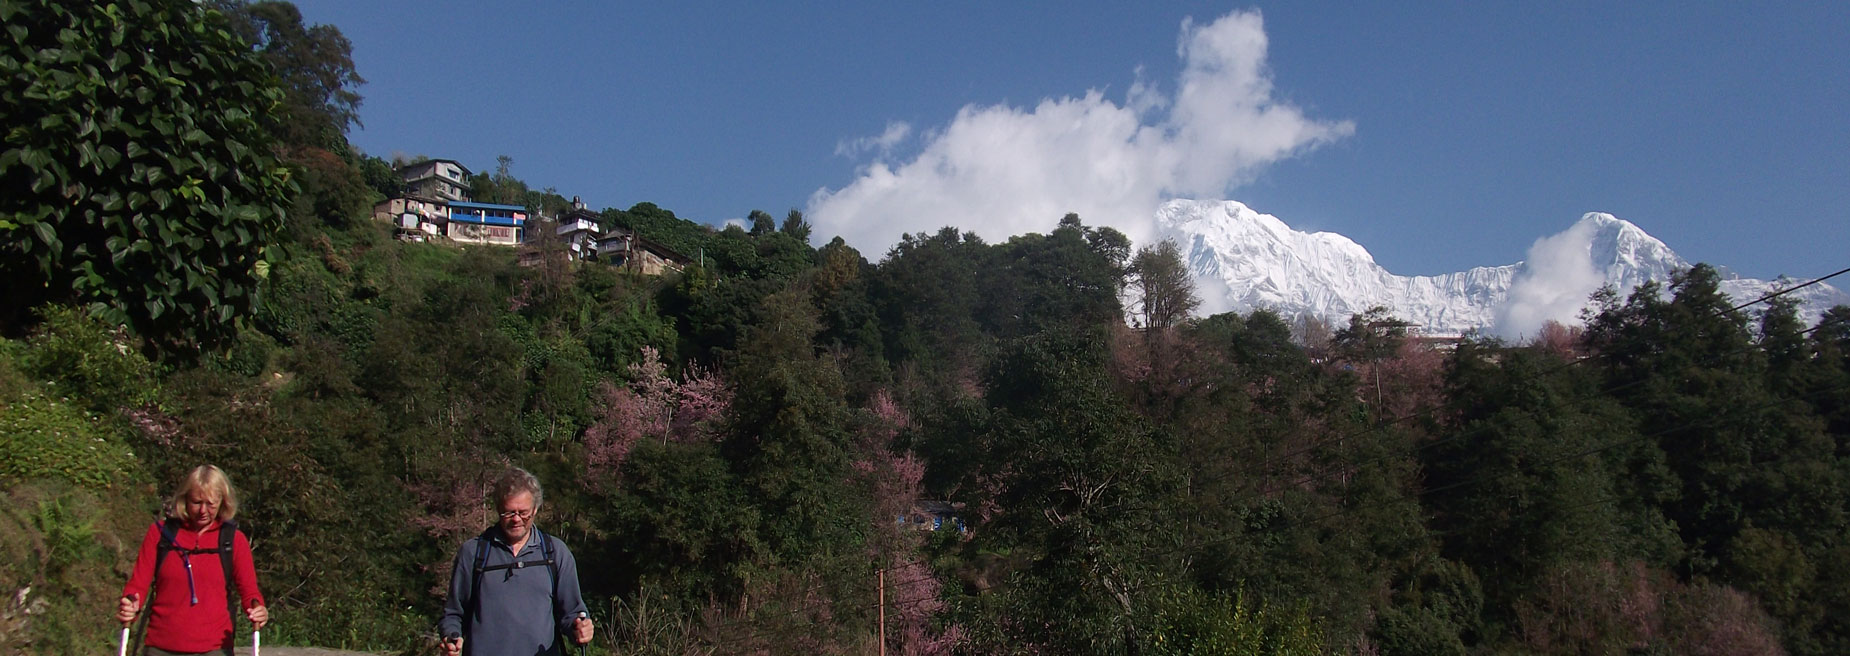 Trekking in Nepal - Exploring Himalaya and more...